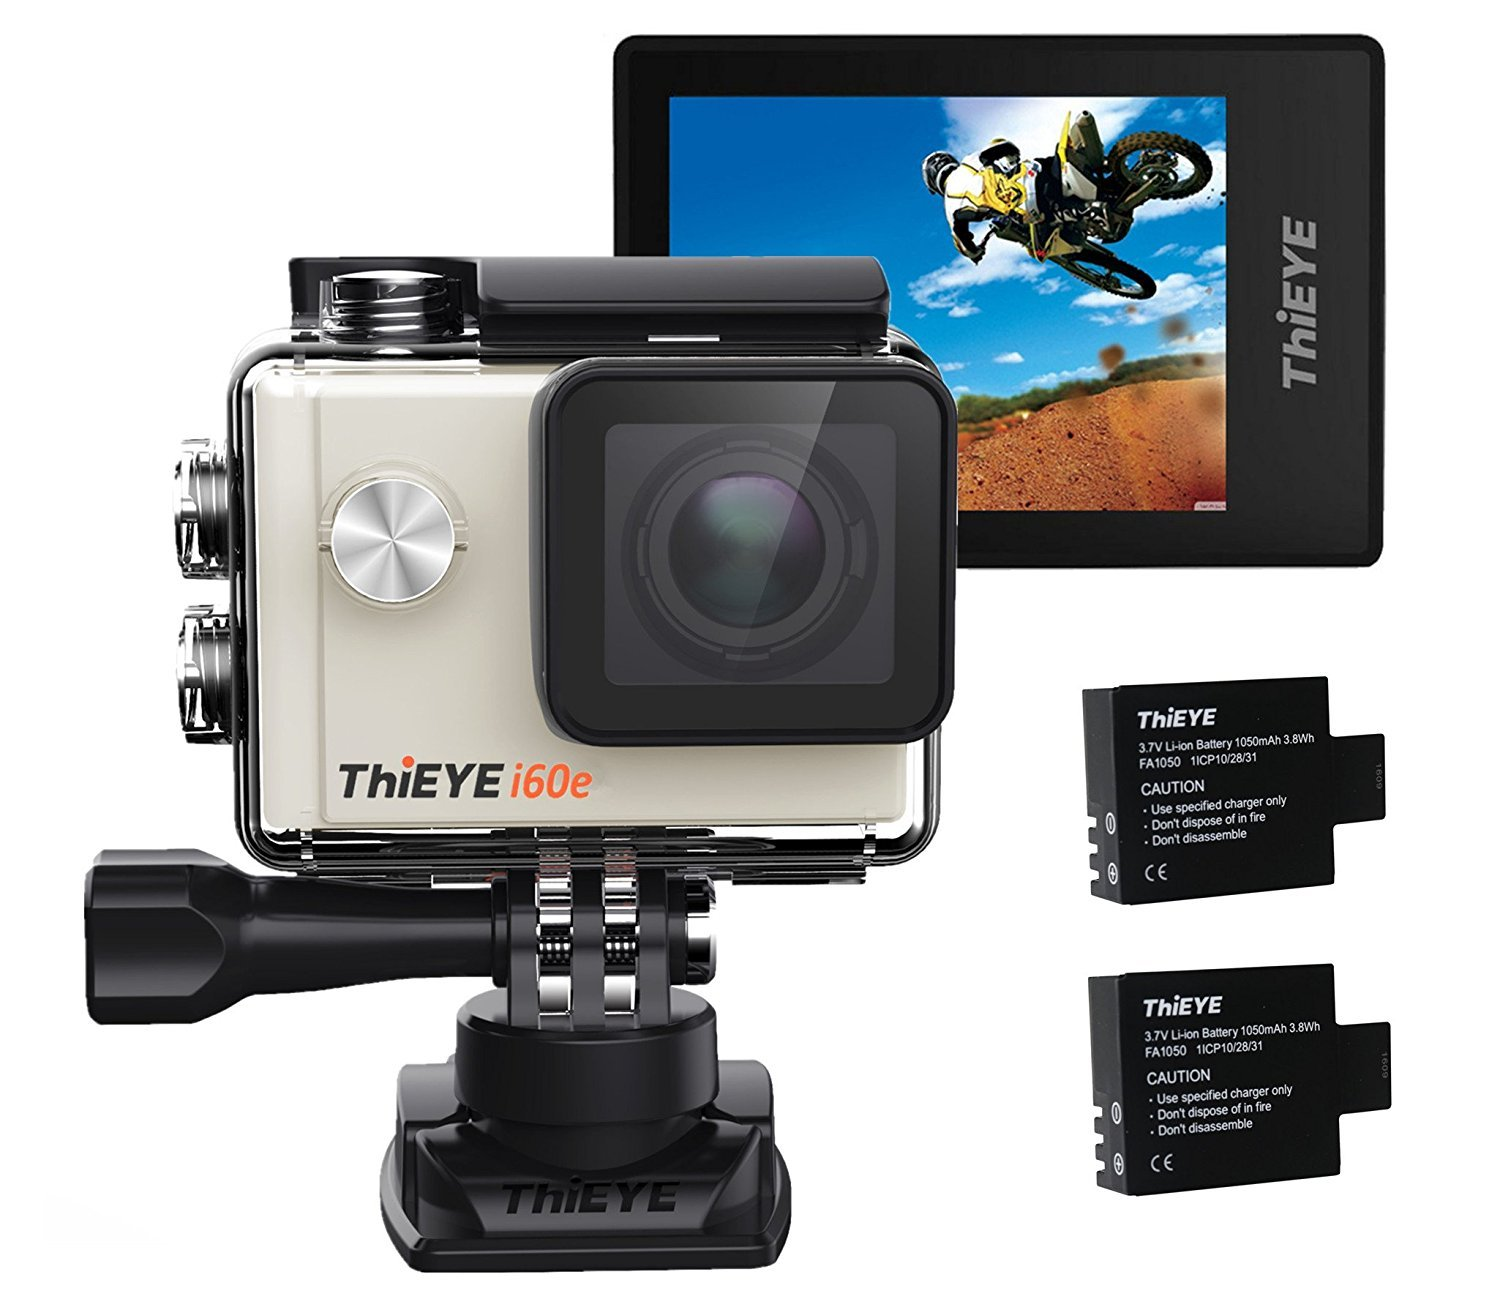 """ThiEYE i60e 4K Wifi Action Camera, 197FT Waterproof Sports Action Camera 2"""" HD Screen with 170 Wide Angle, APP Control and Full Accessories Silver"""